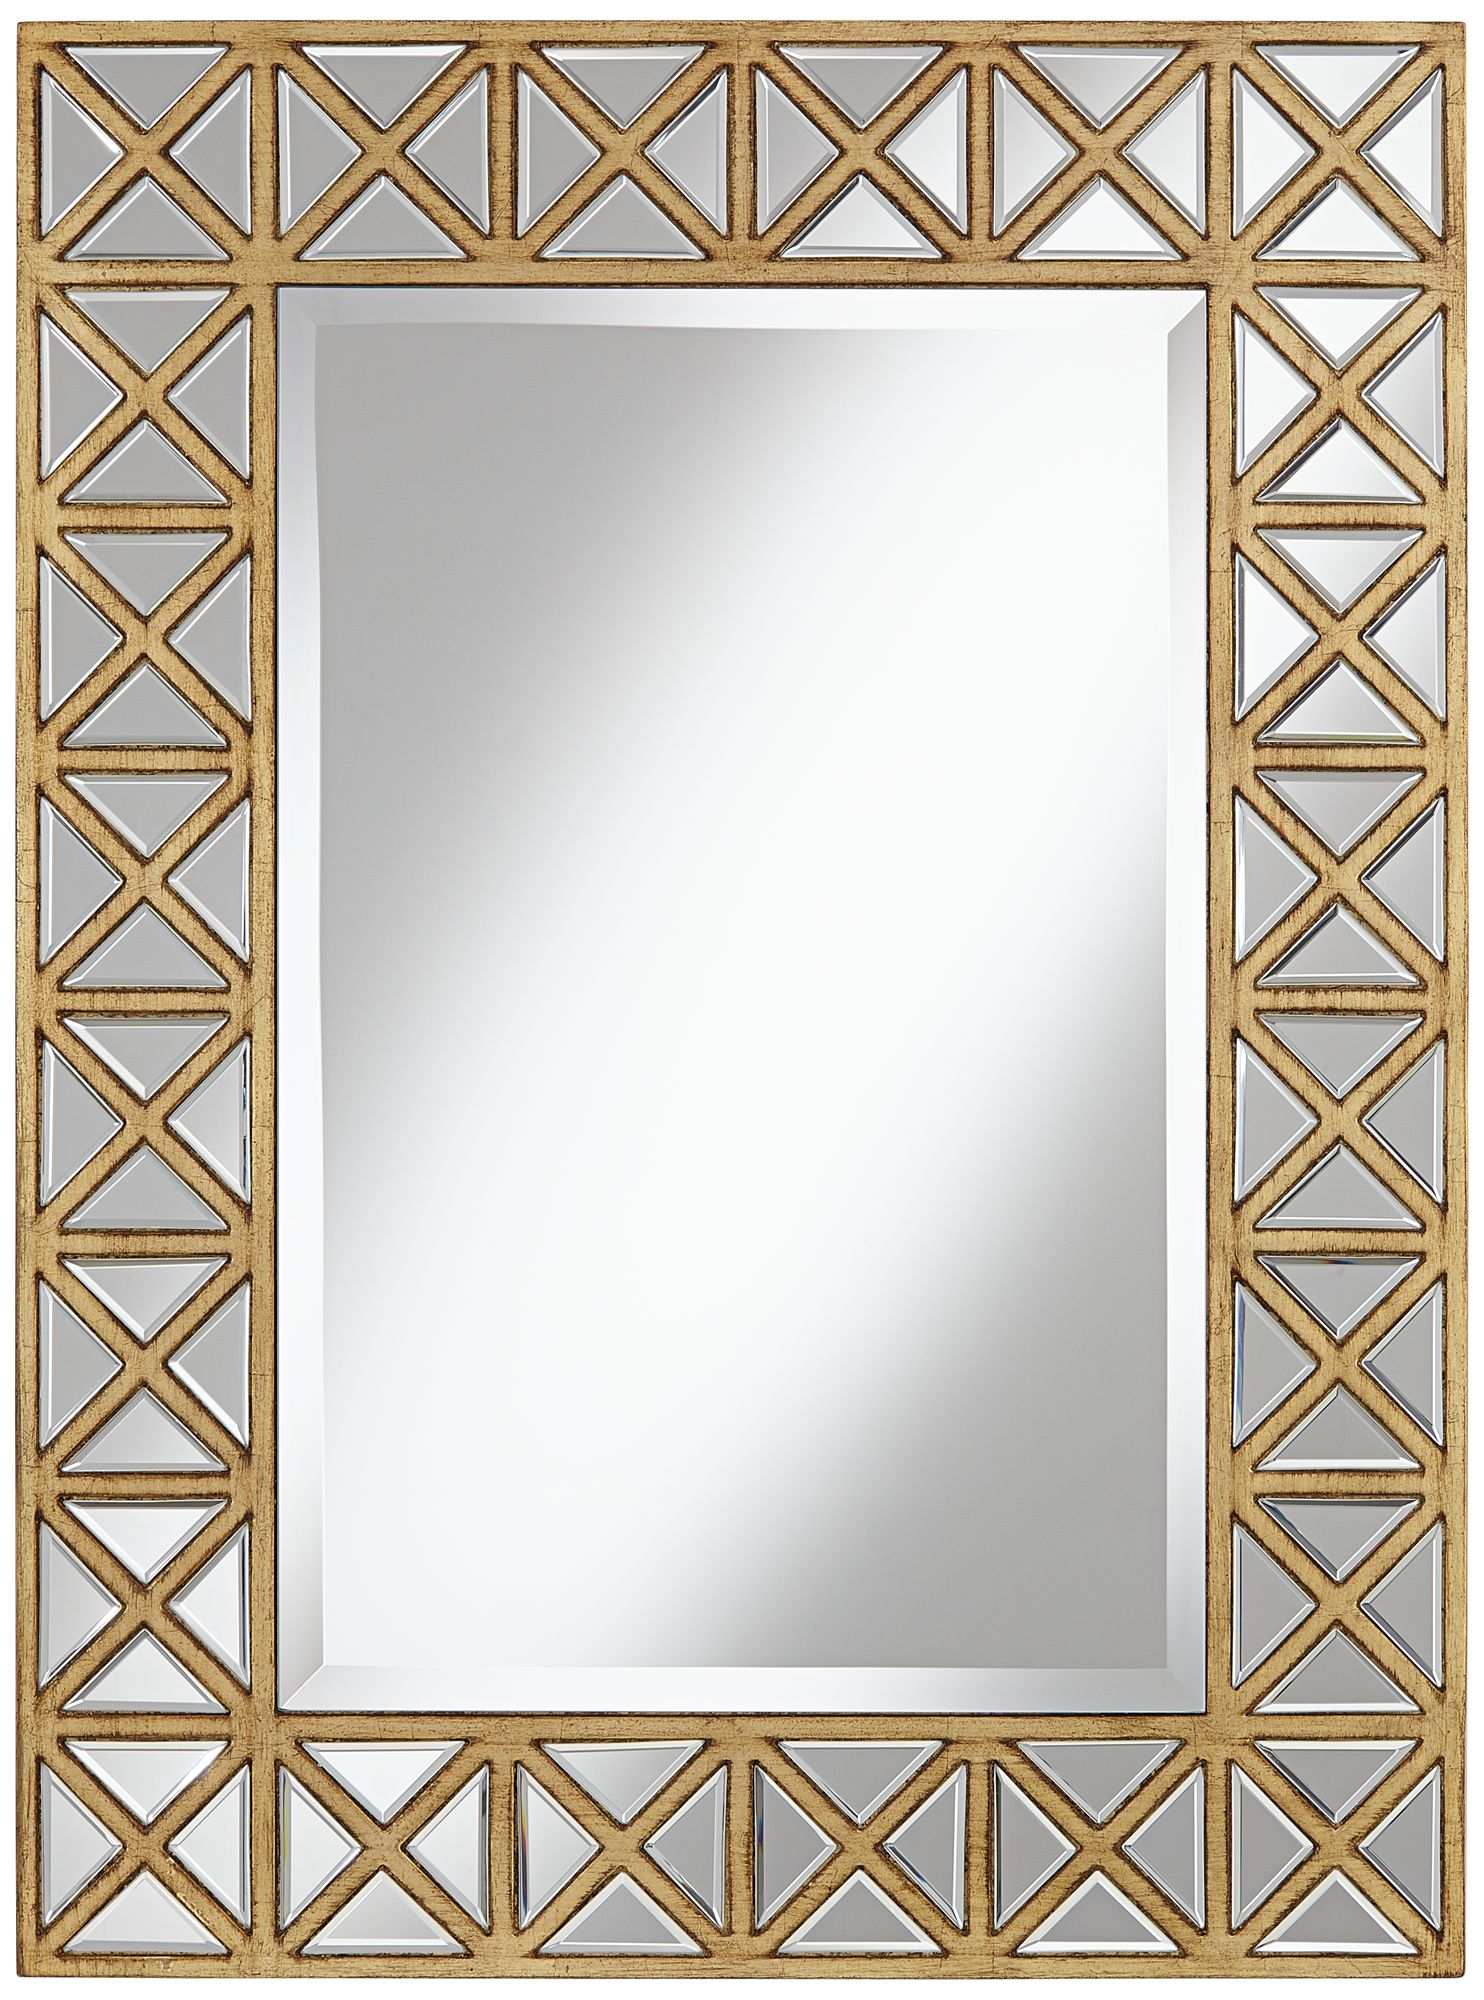 Reflect your style with wall mirrors and mirrored